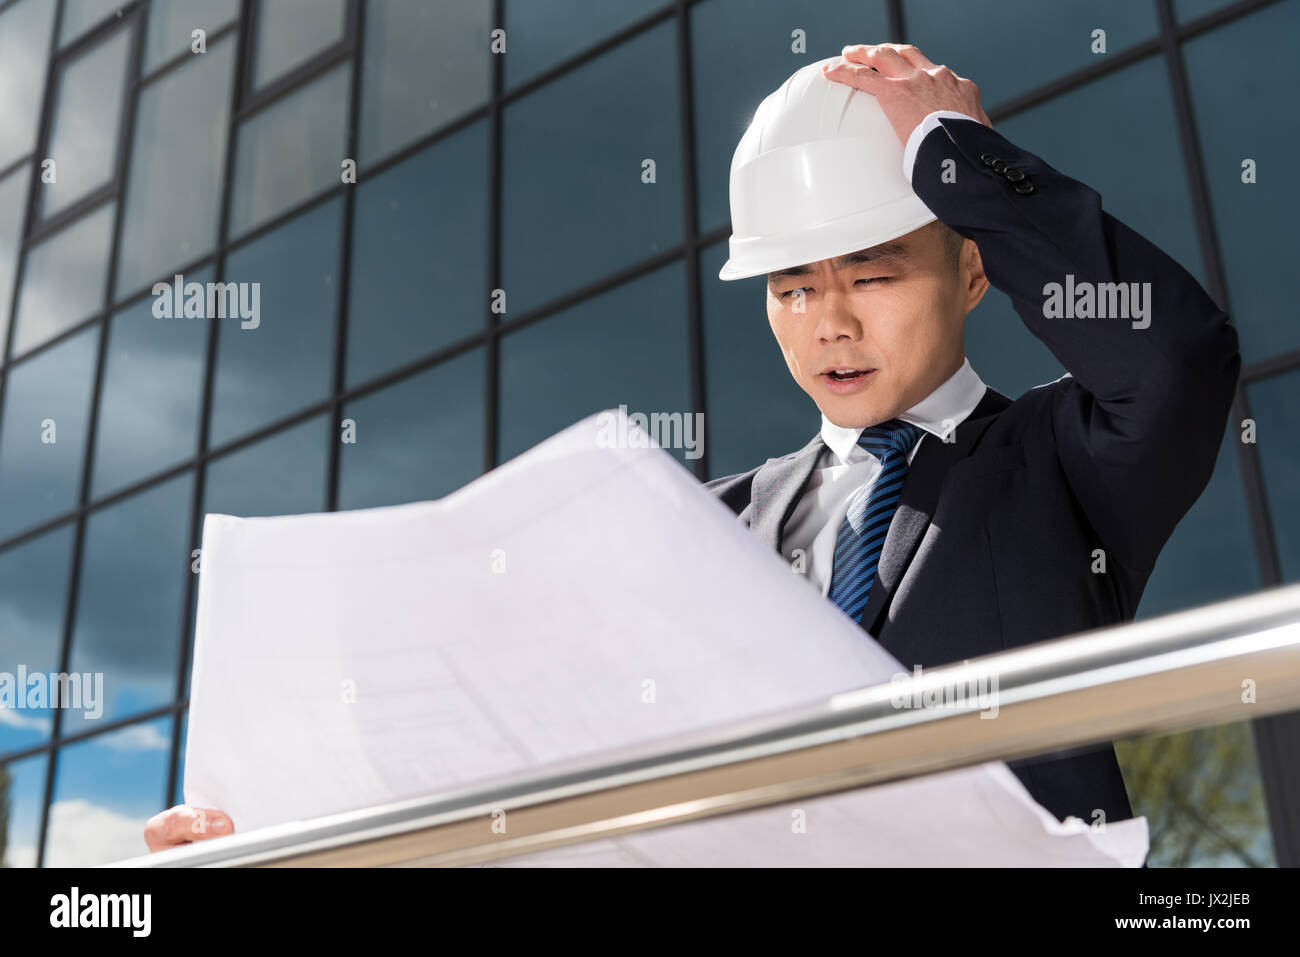 portrait of confused professional architect in hard hat looking at blueprint - Stock Image